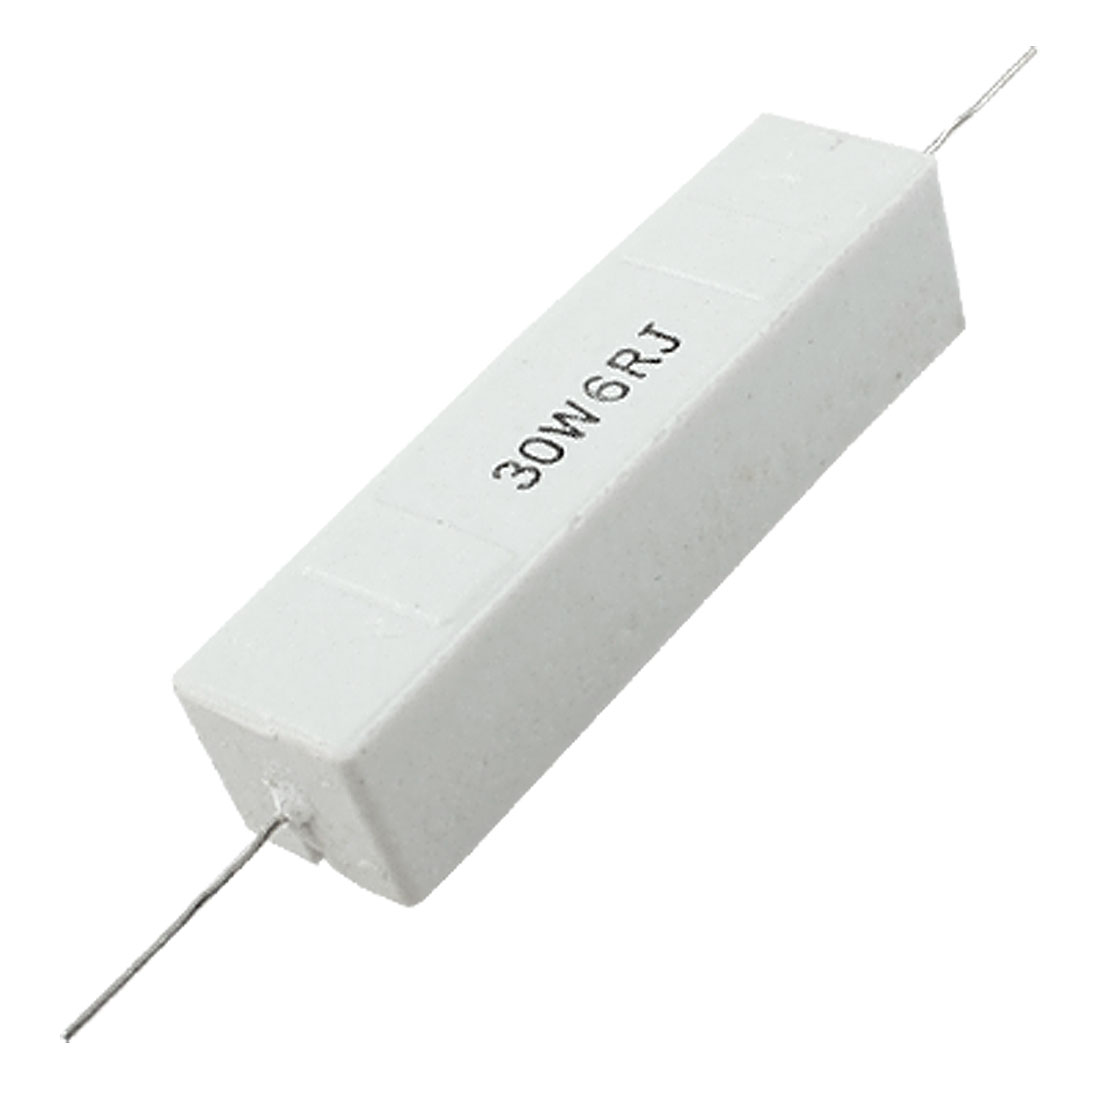 30W Watt 6 Ohm 5% Wirewound Ceramic Cement Resistor